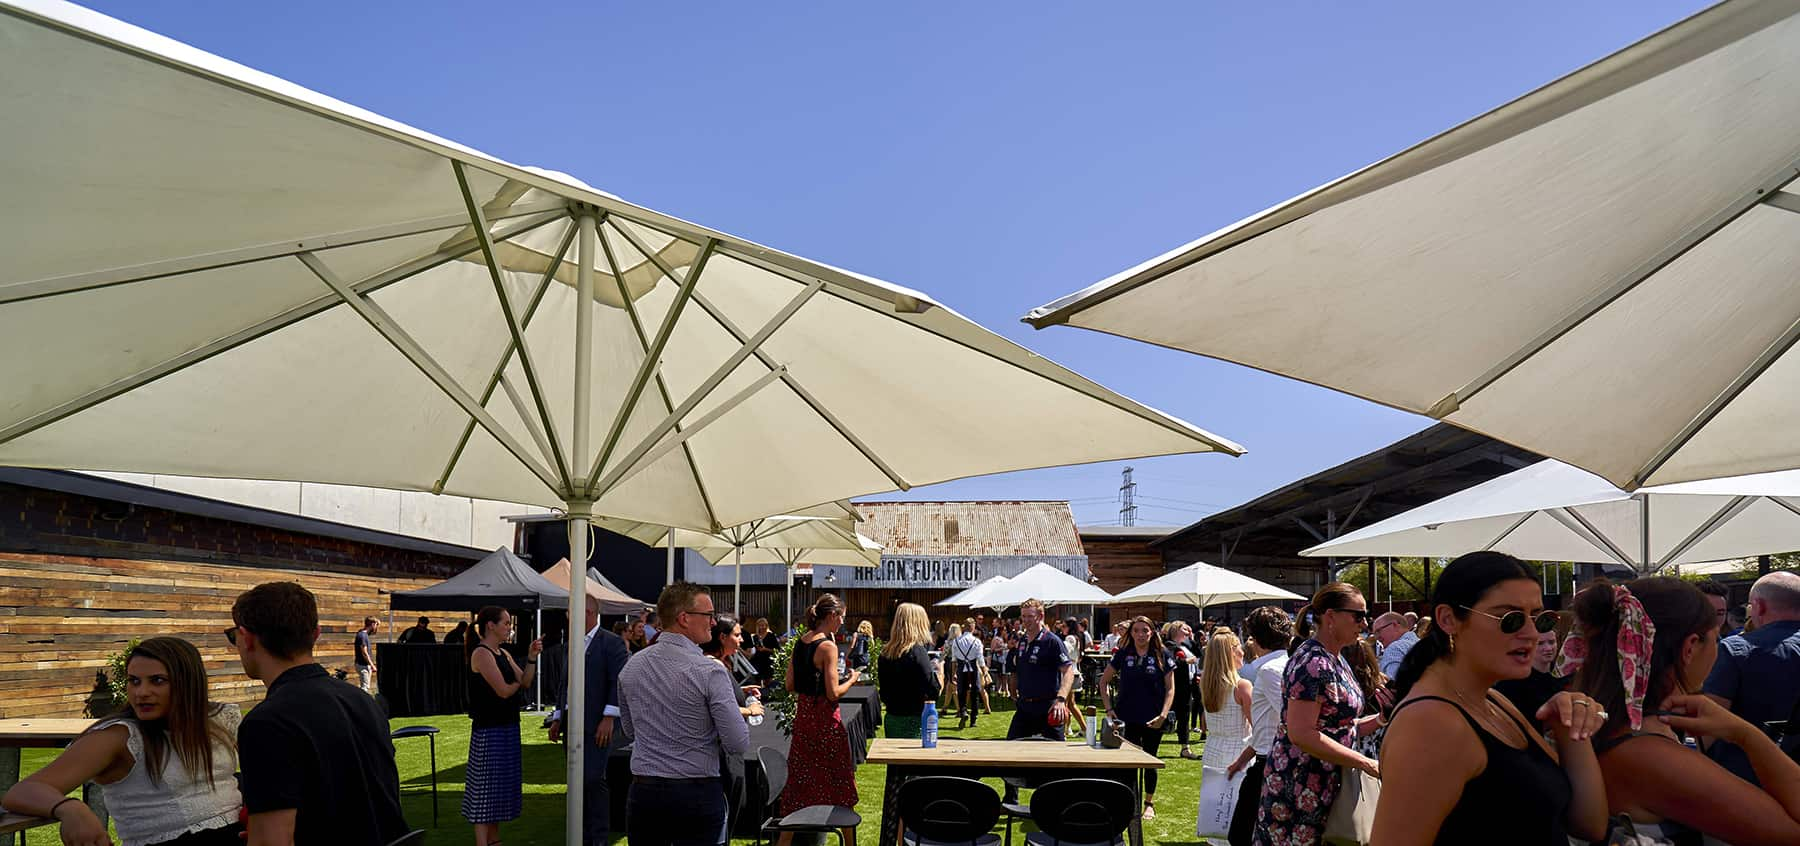 the-timber-yard-melbourne-event-space-the-yard